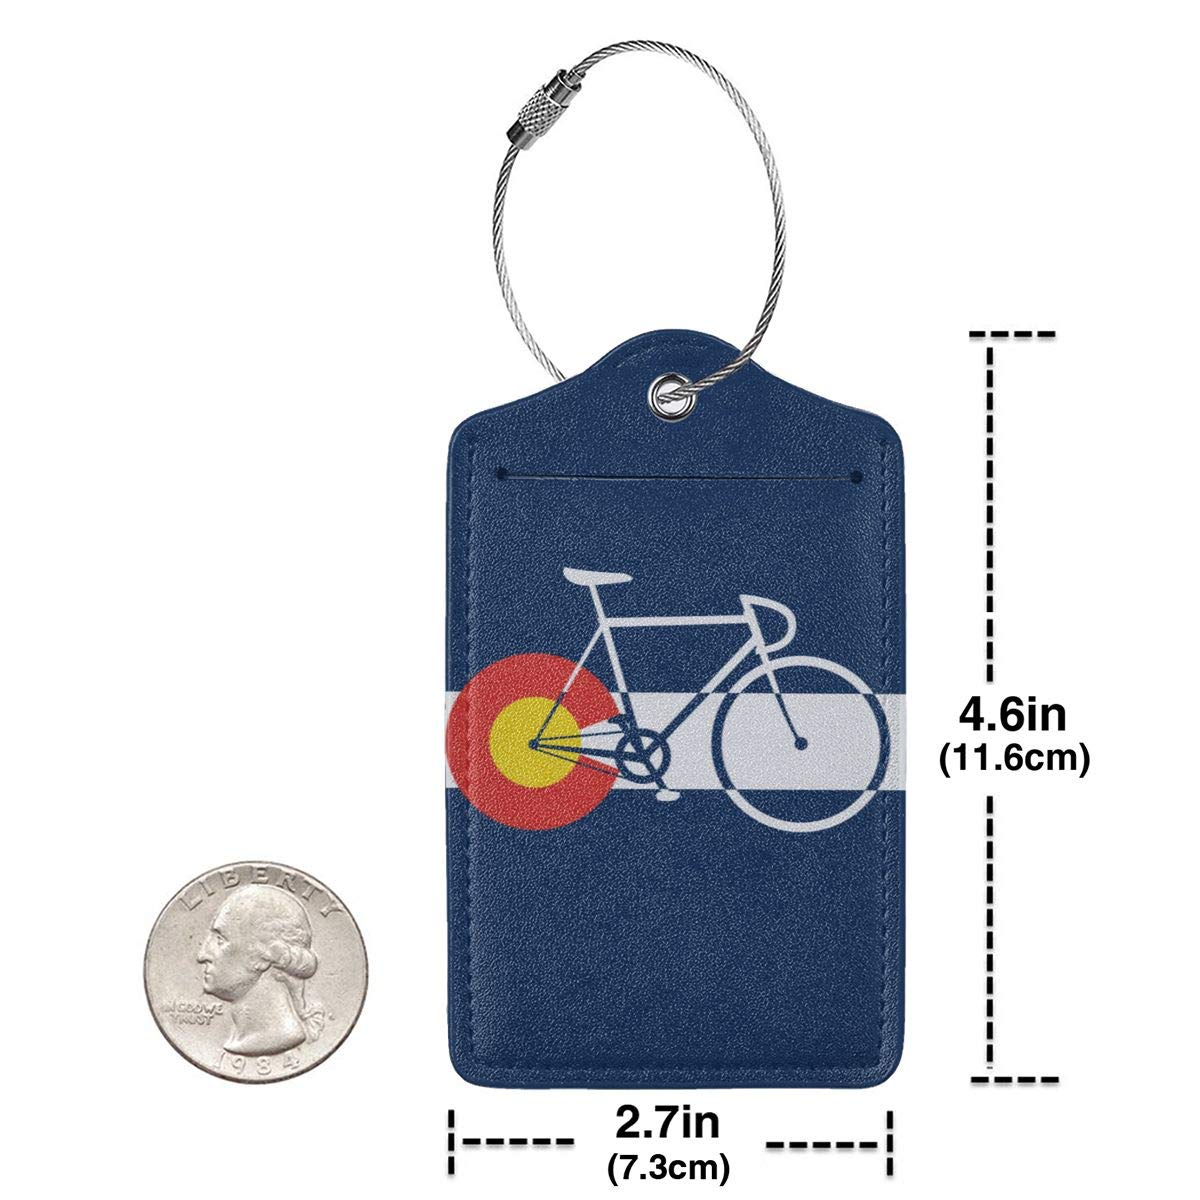 GoldK Colorado Flag and Bicycle Leather Luggage Tags Baggage Bag Instrument Tag Travel Labels Accessories with Privacy Cover